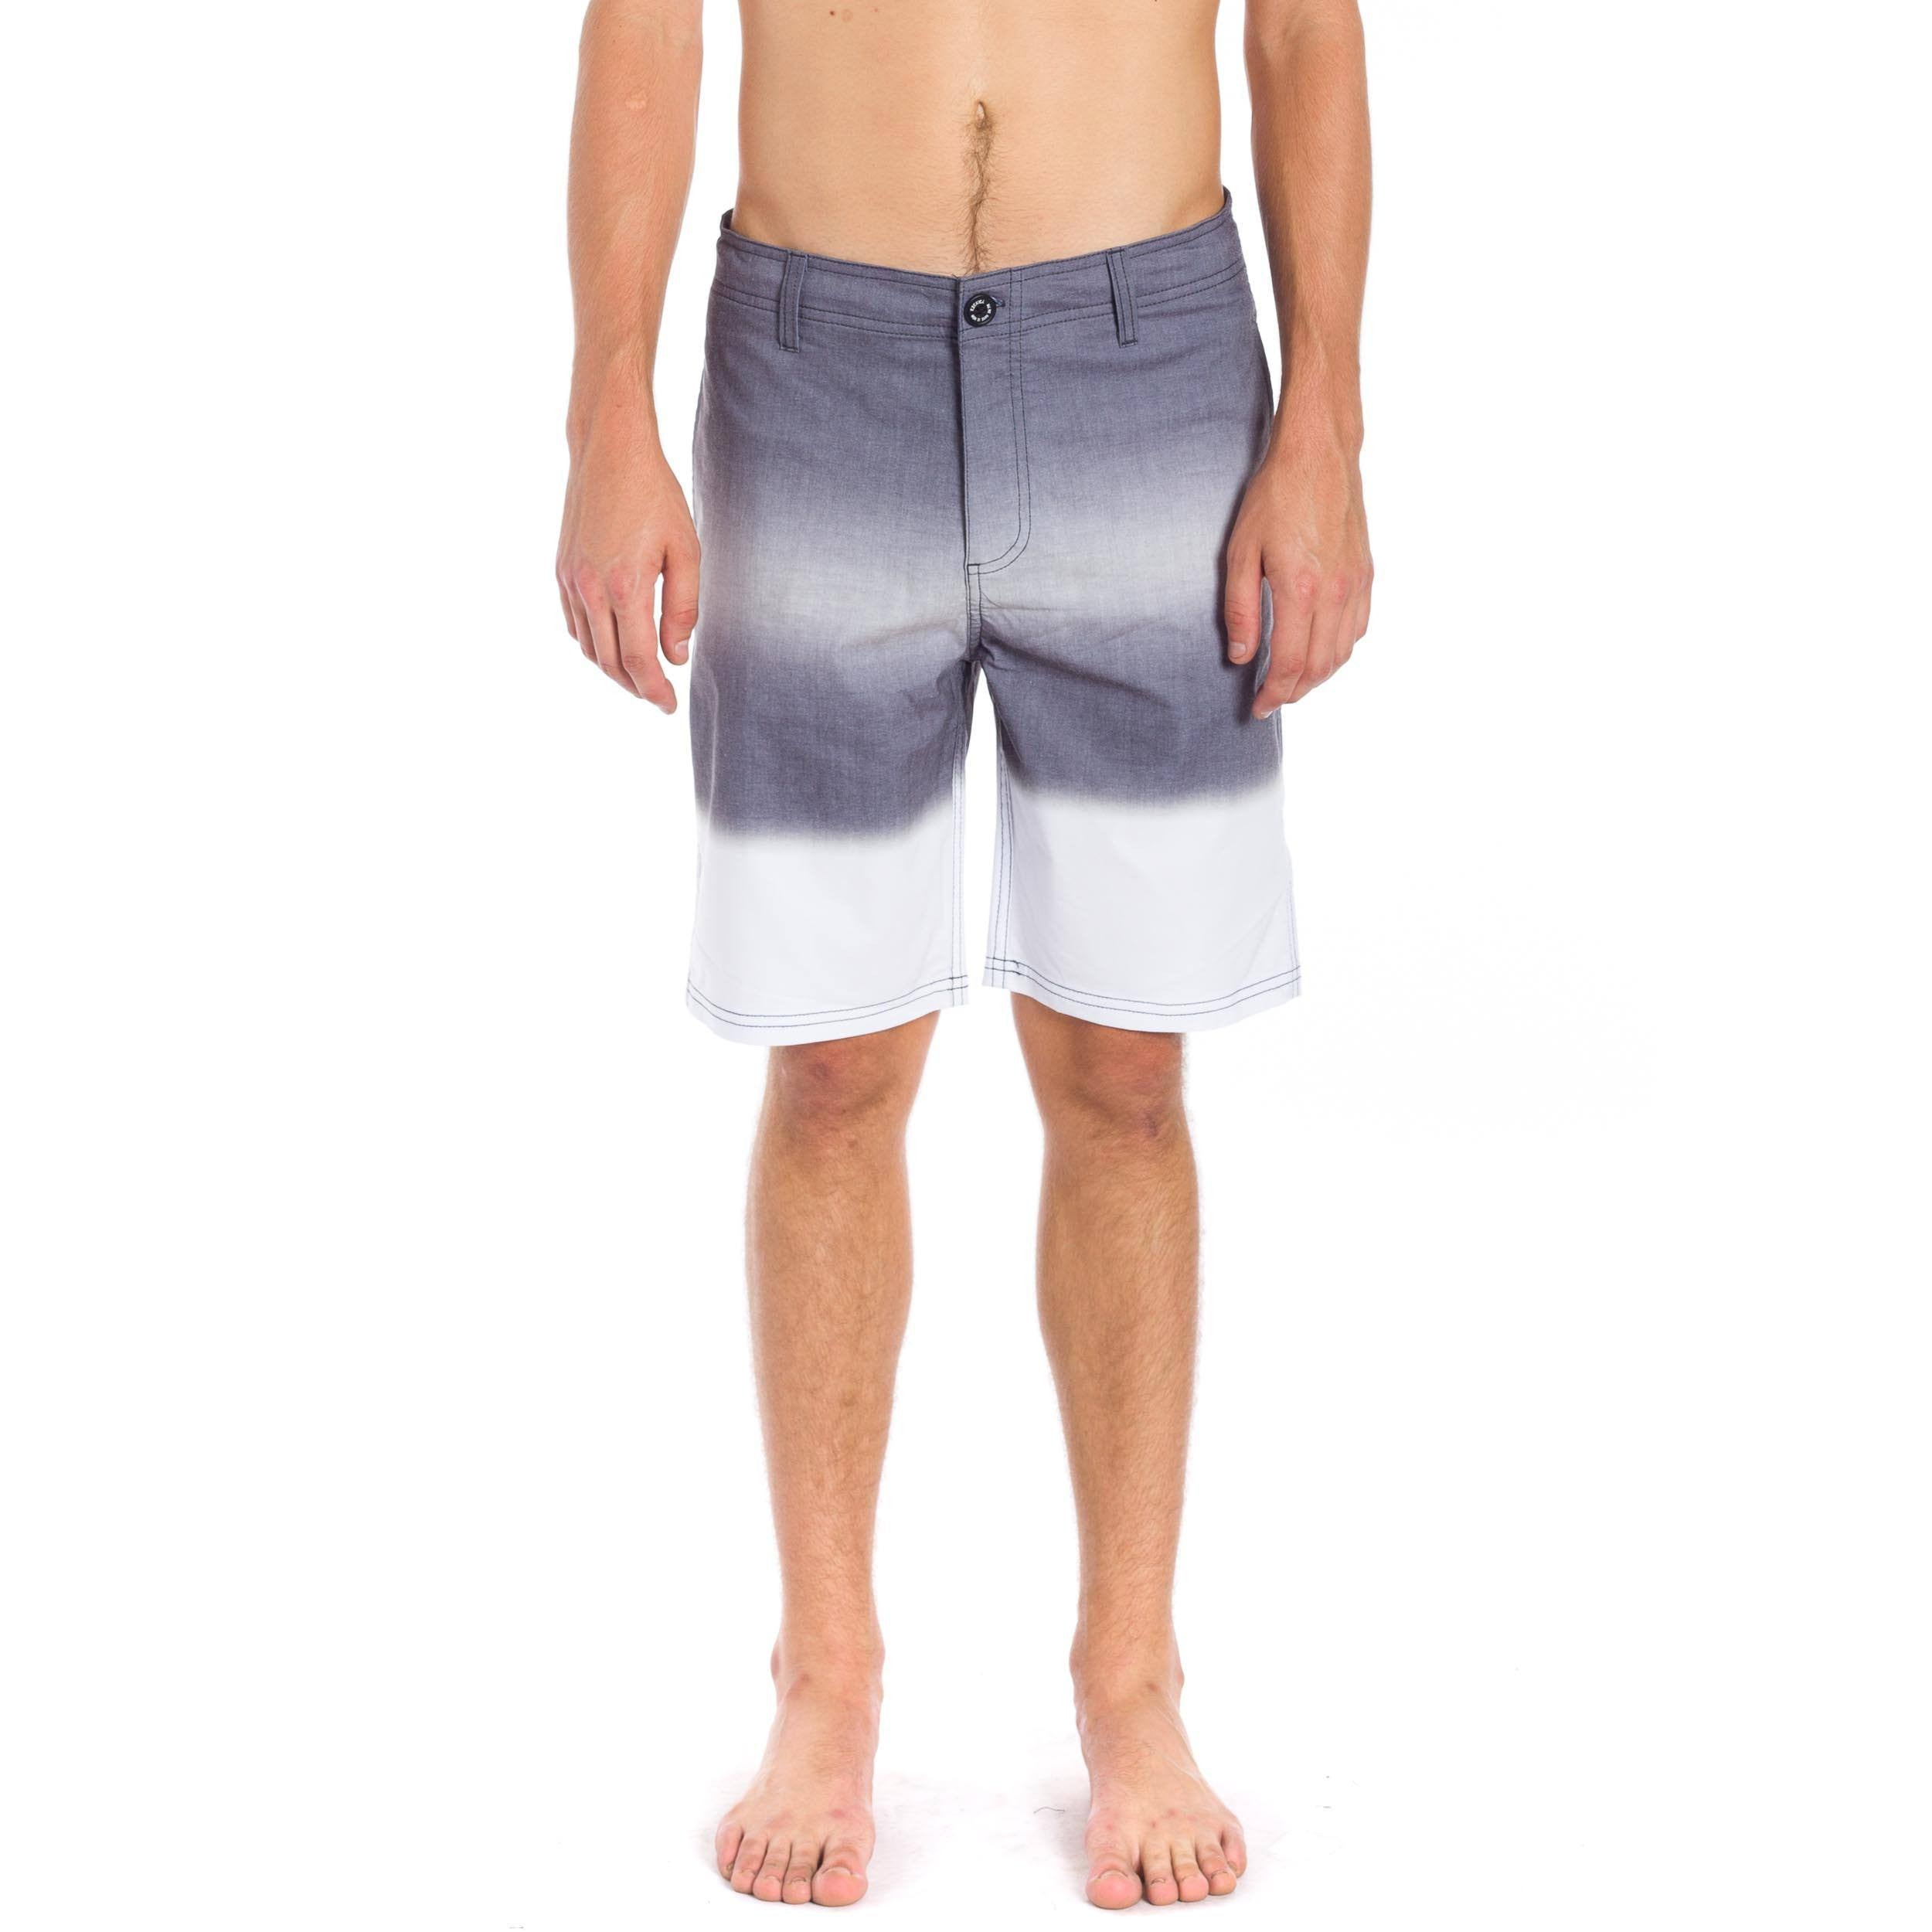 Fever Versa Boardshort - Black